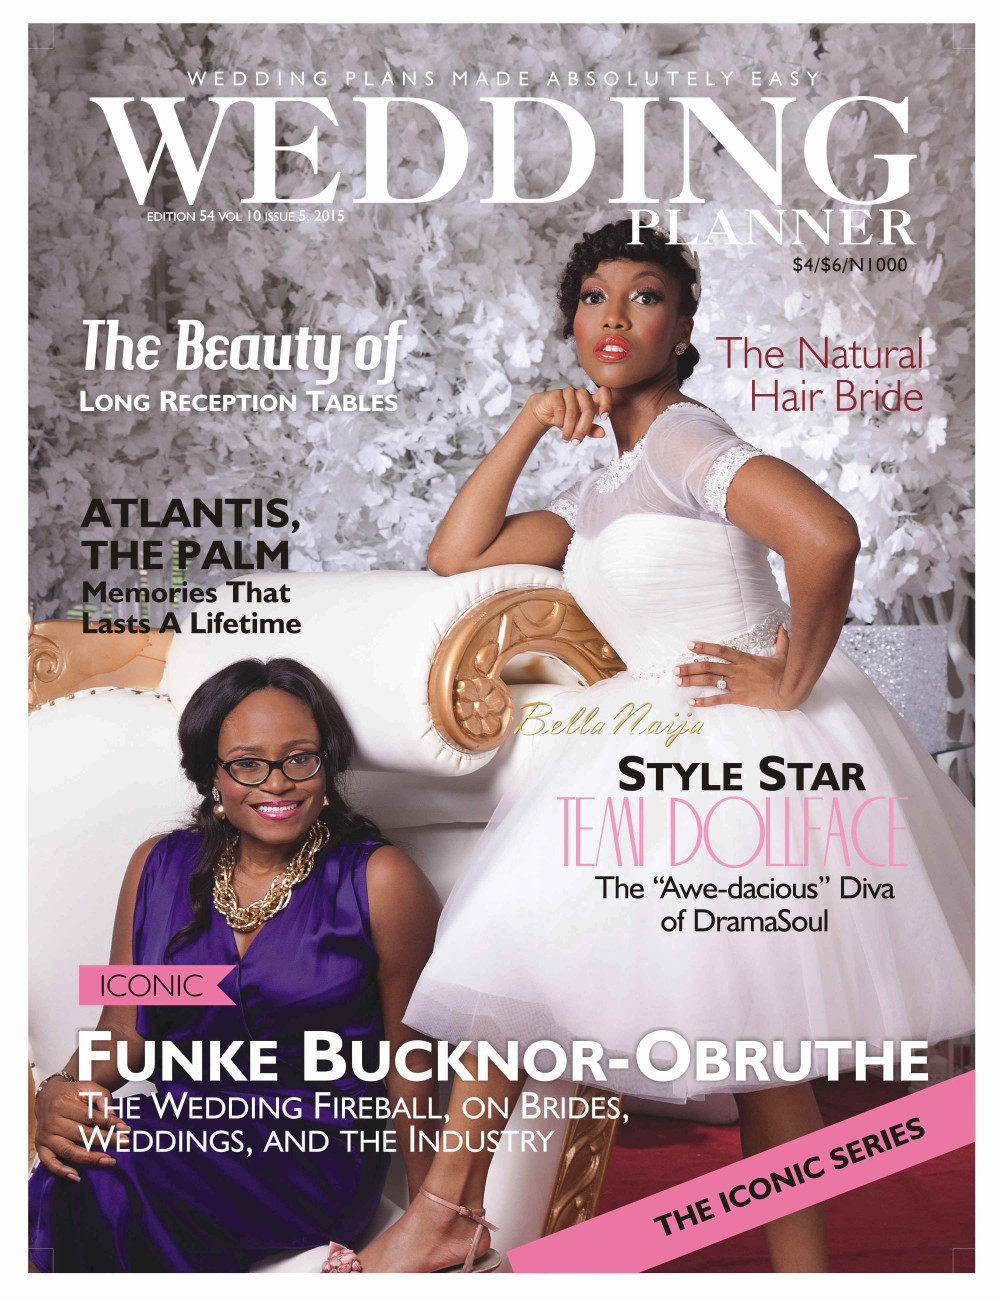 here comes the bride temi dollface covers wedding planner magazines latest issue wedding magazines The latest issue of Wedding Planner magazine is out and the cover star is non other than music star Temi Dollface as she is joined by Wedding planner Funke